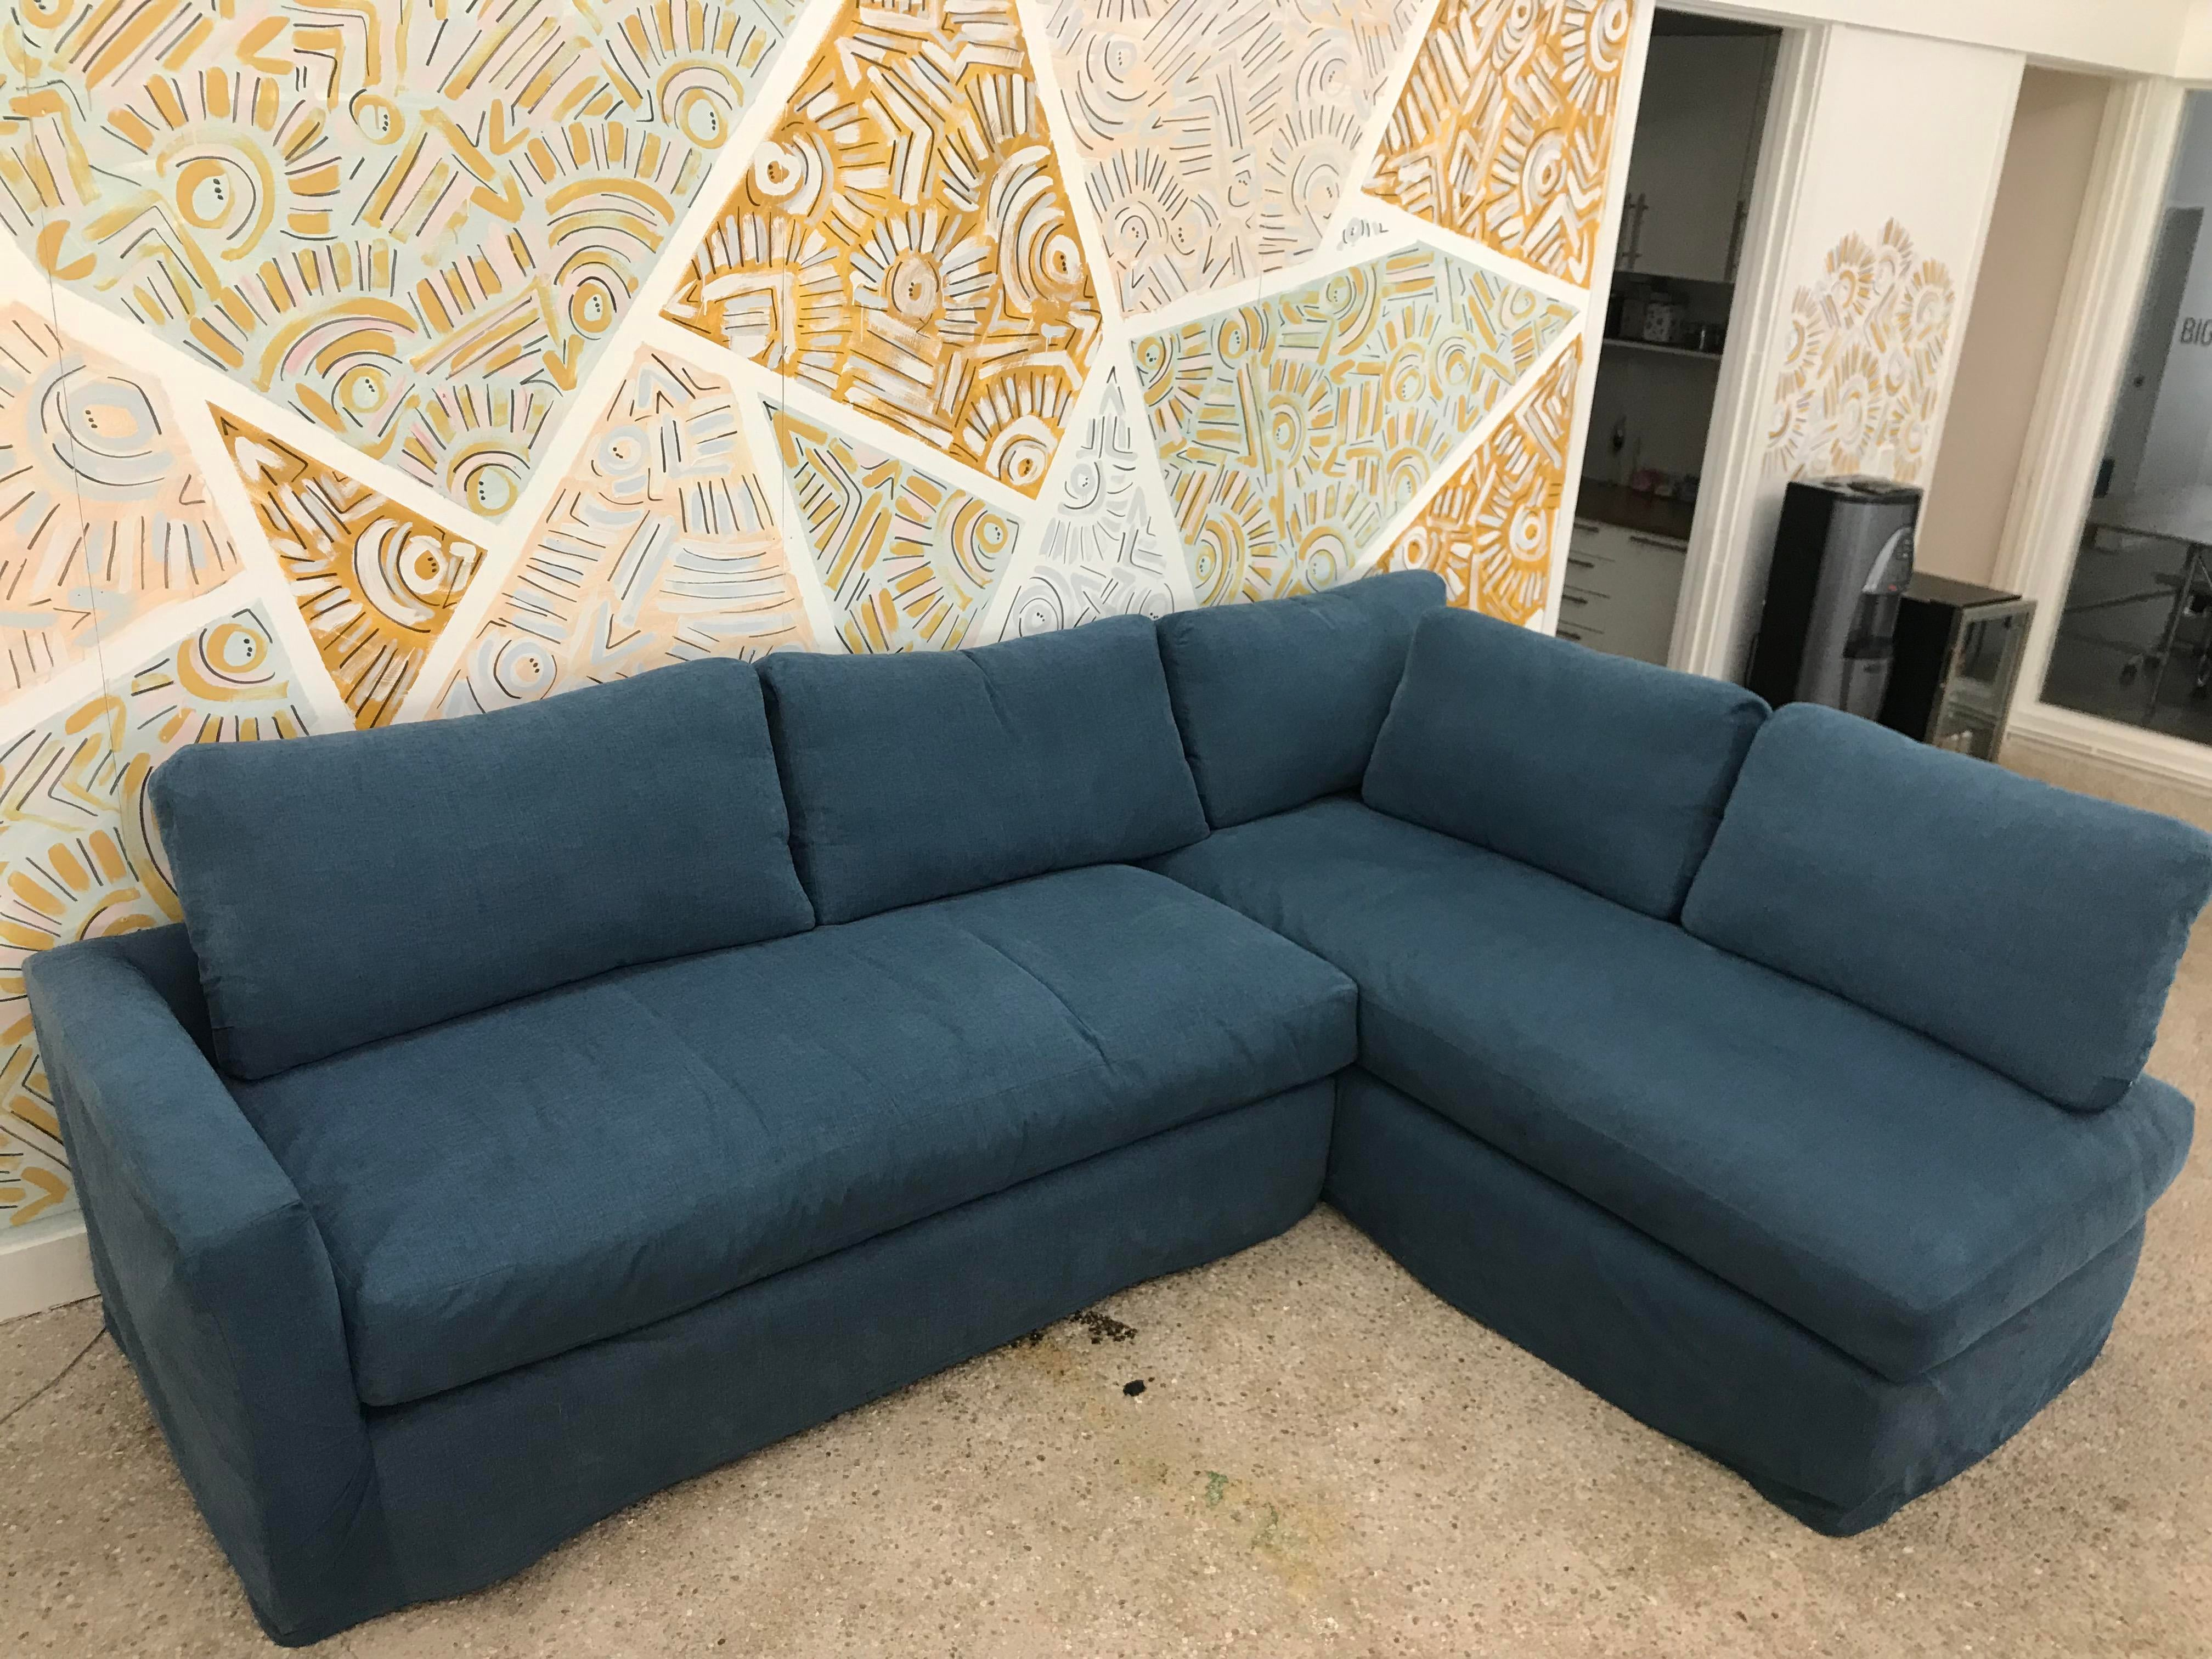 2010s Shabby Chic Rachel Ashwell Ink Blue Sectional Sofa For Sale   Image 5  Of 7